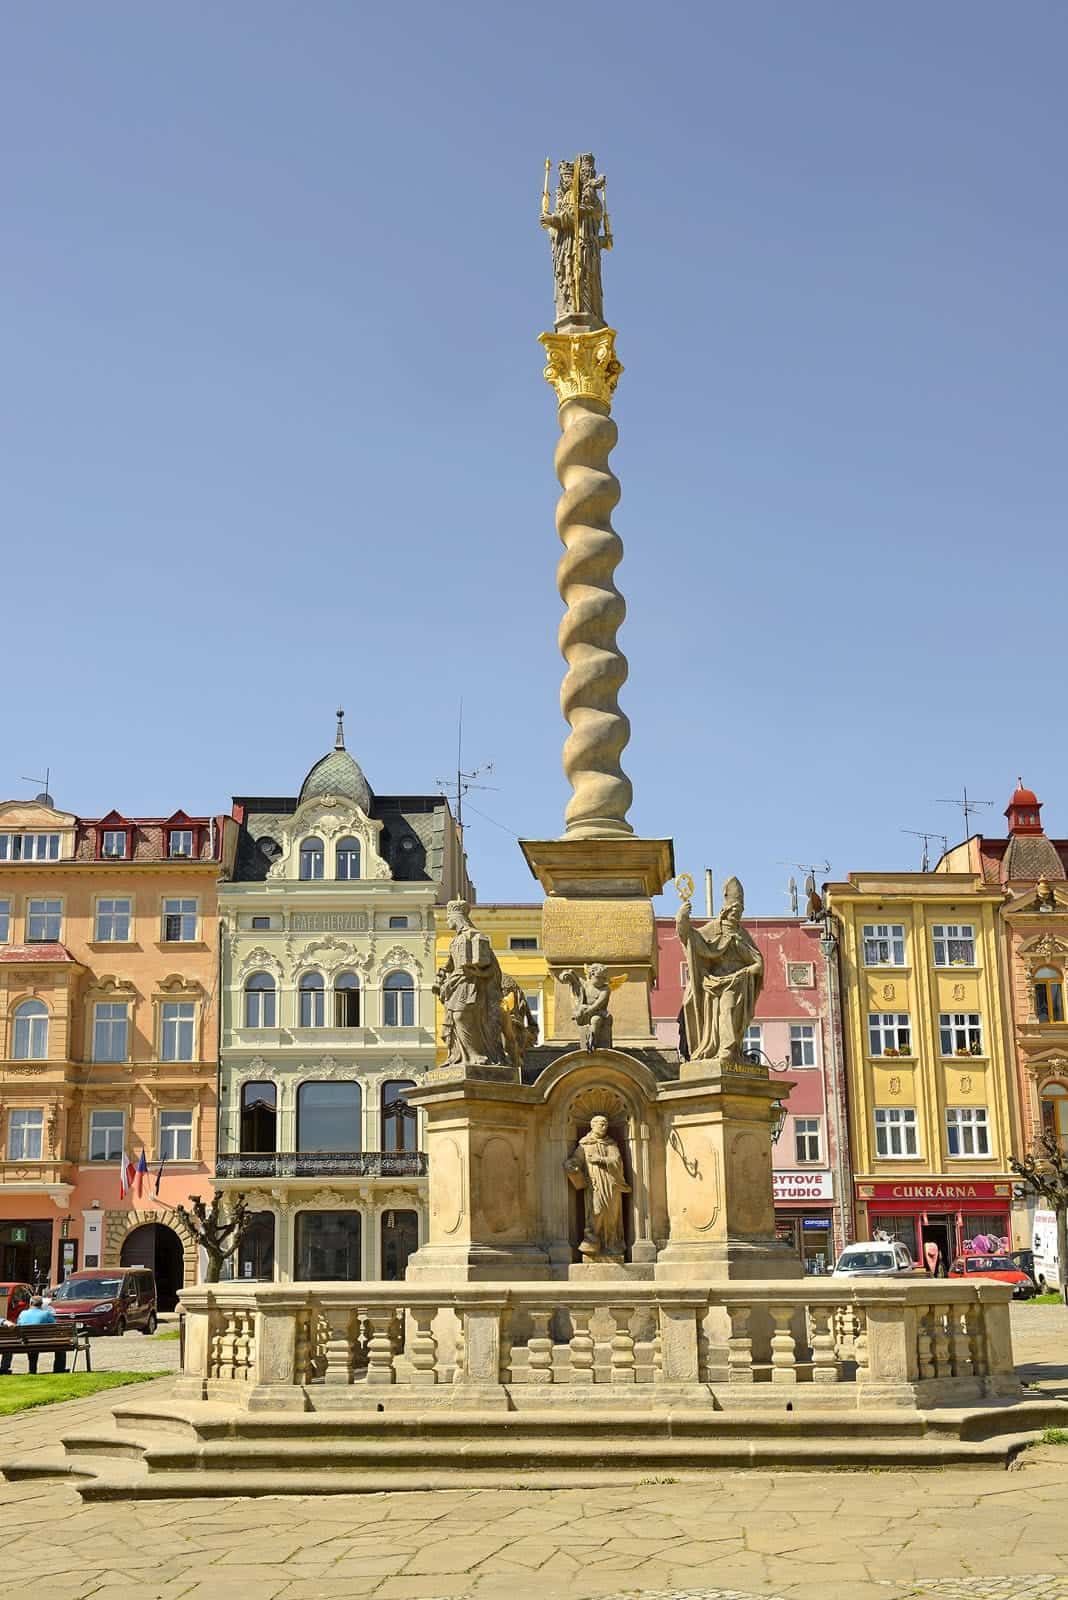 Column with the statue of the Virgin Mary in the square